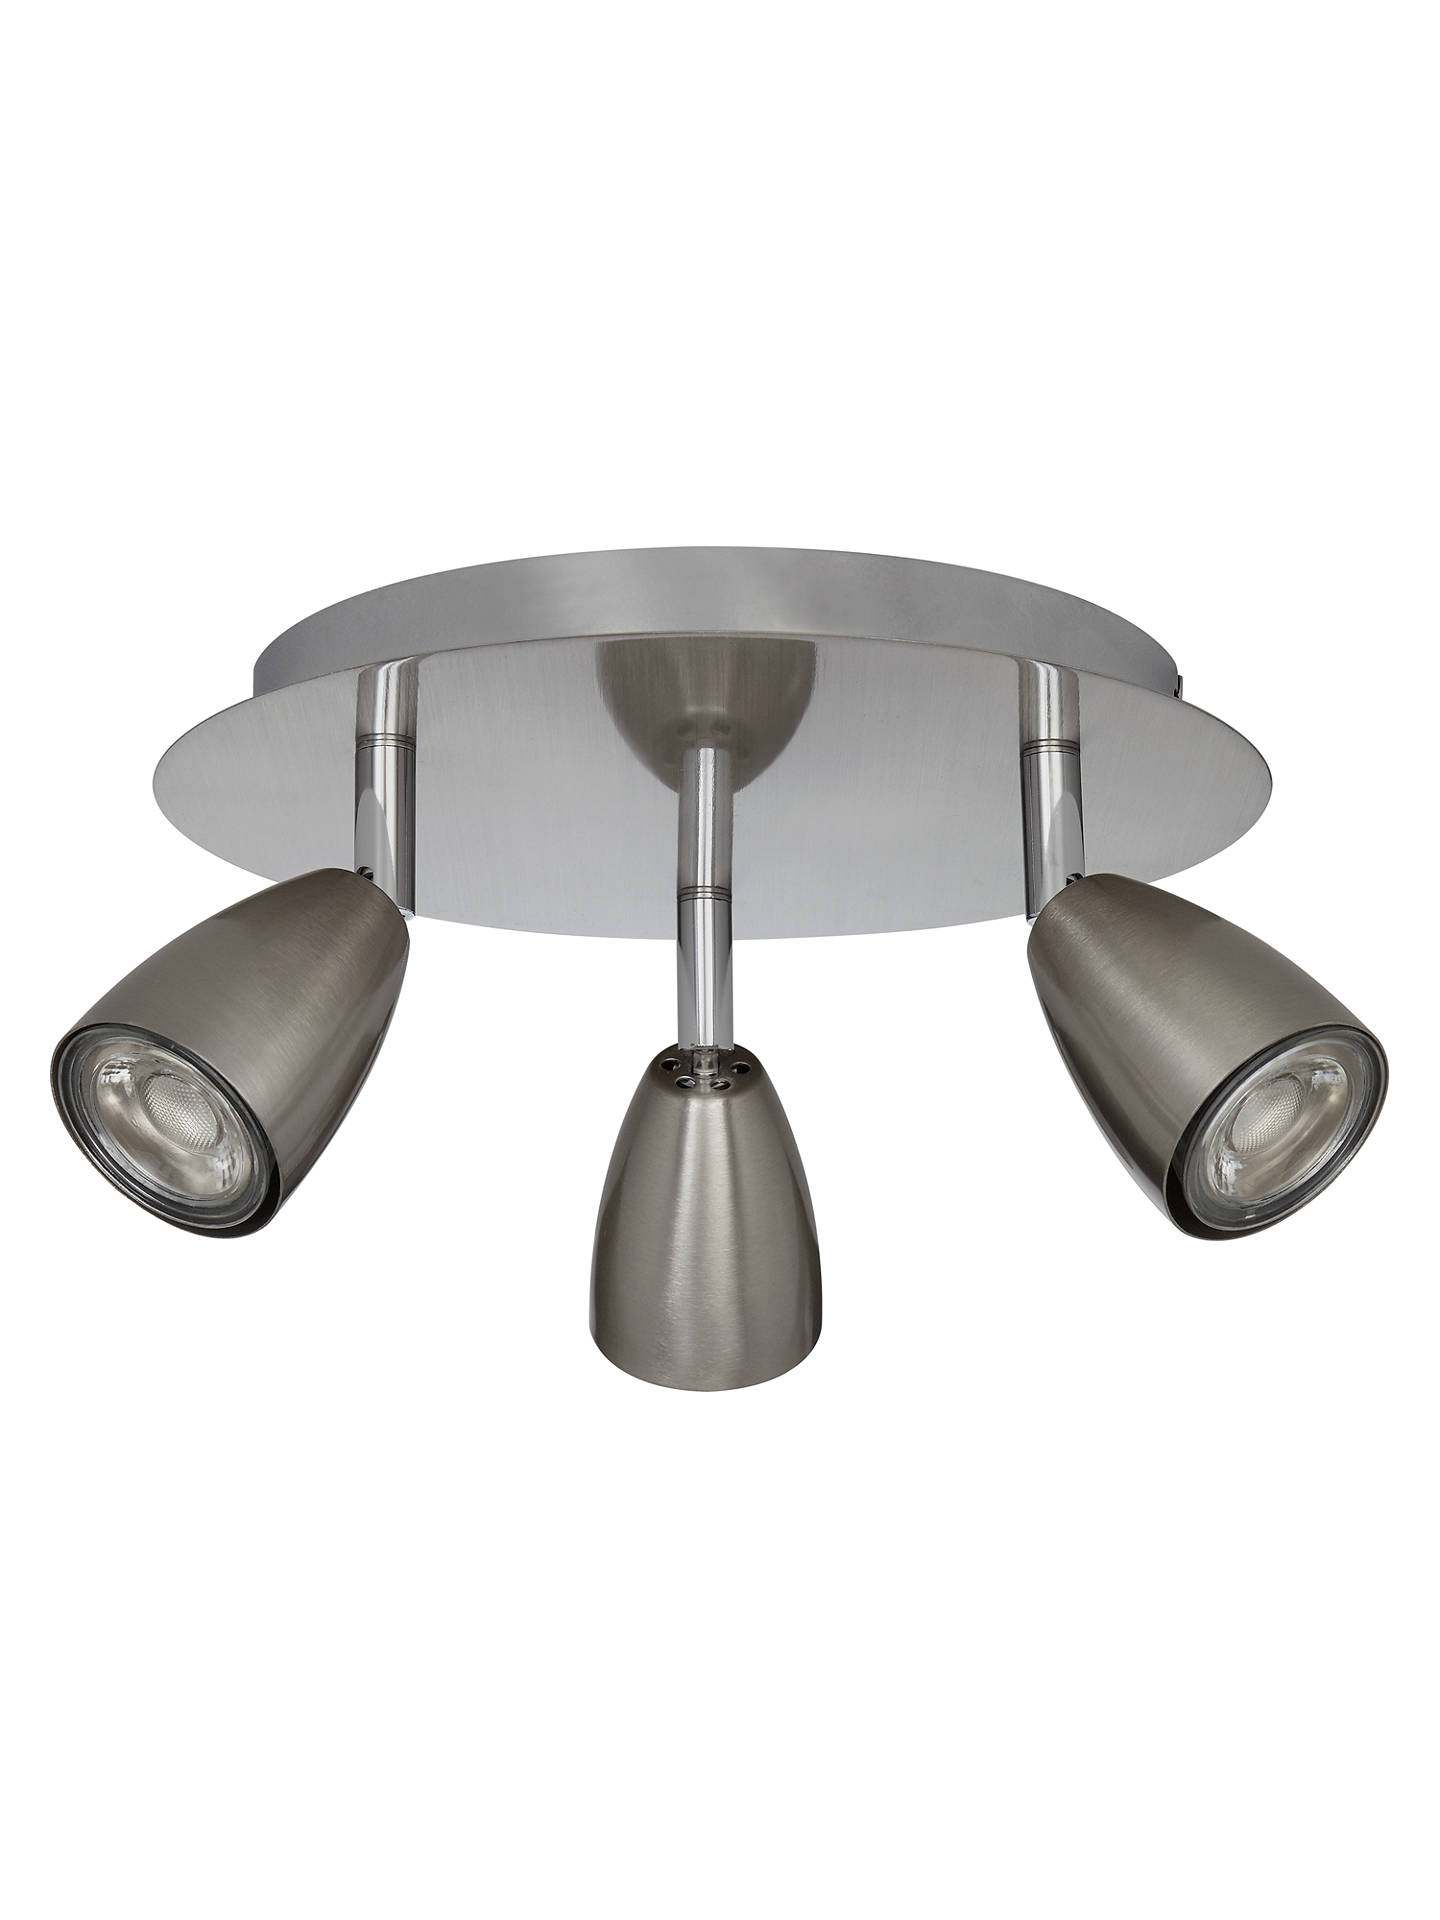 BuyJohn Lewis & Partners Thea GU10 LED 3 Spotlight Ceiling Plate, Chrome Online at johnlewis.com